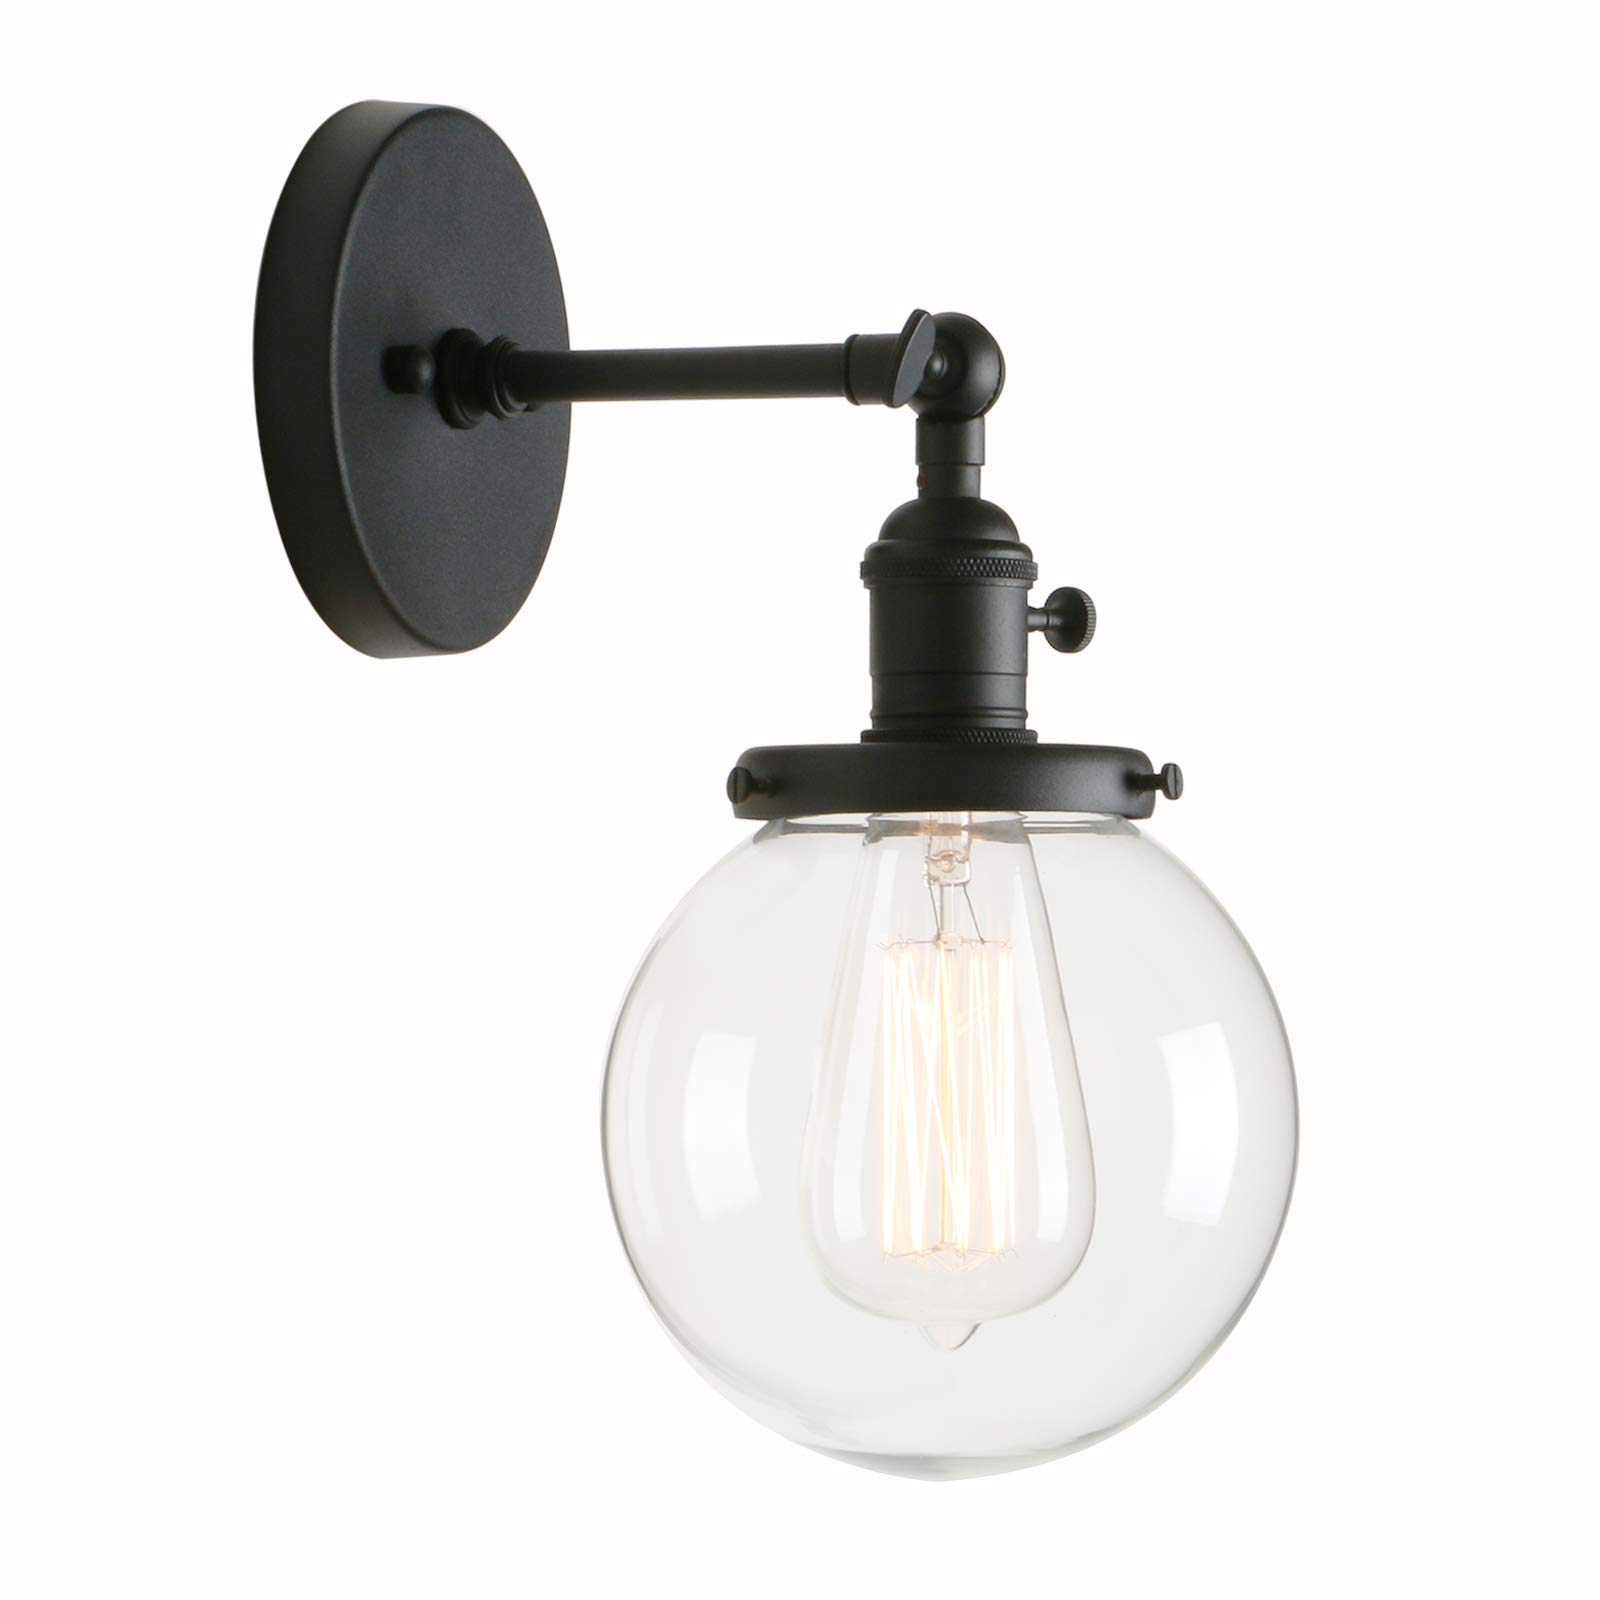 Permo Vintage Industrial Wall Sconce Lighting Fixture with Mini 5.9'' Round Clear Glass Globe Hand Blown Shade (Black)